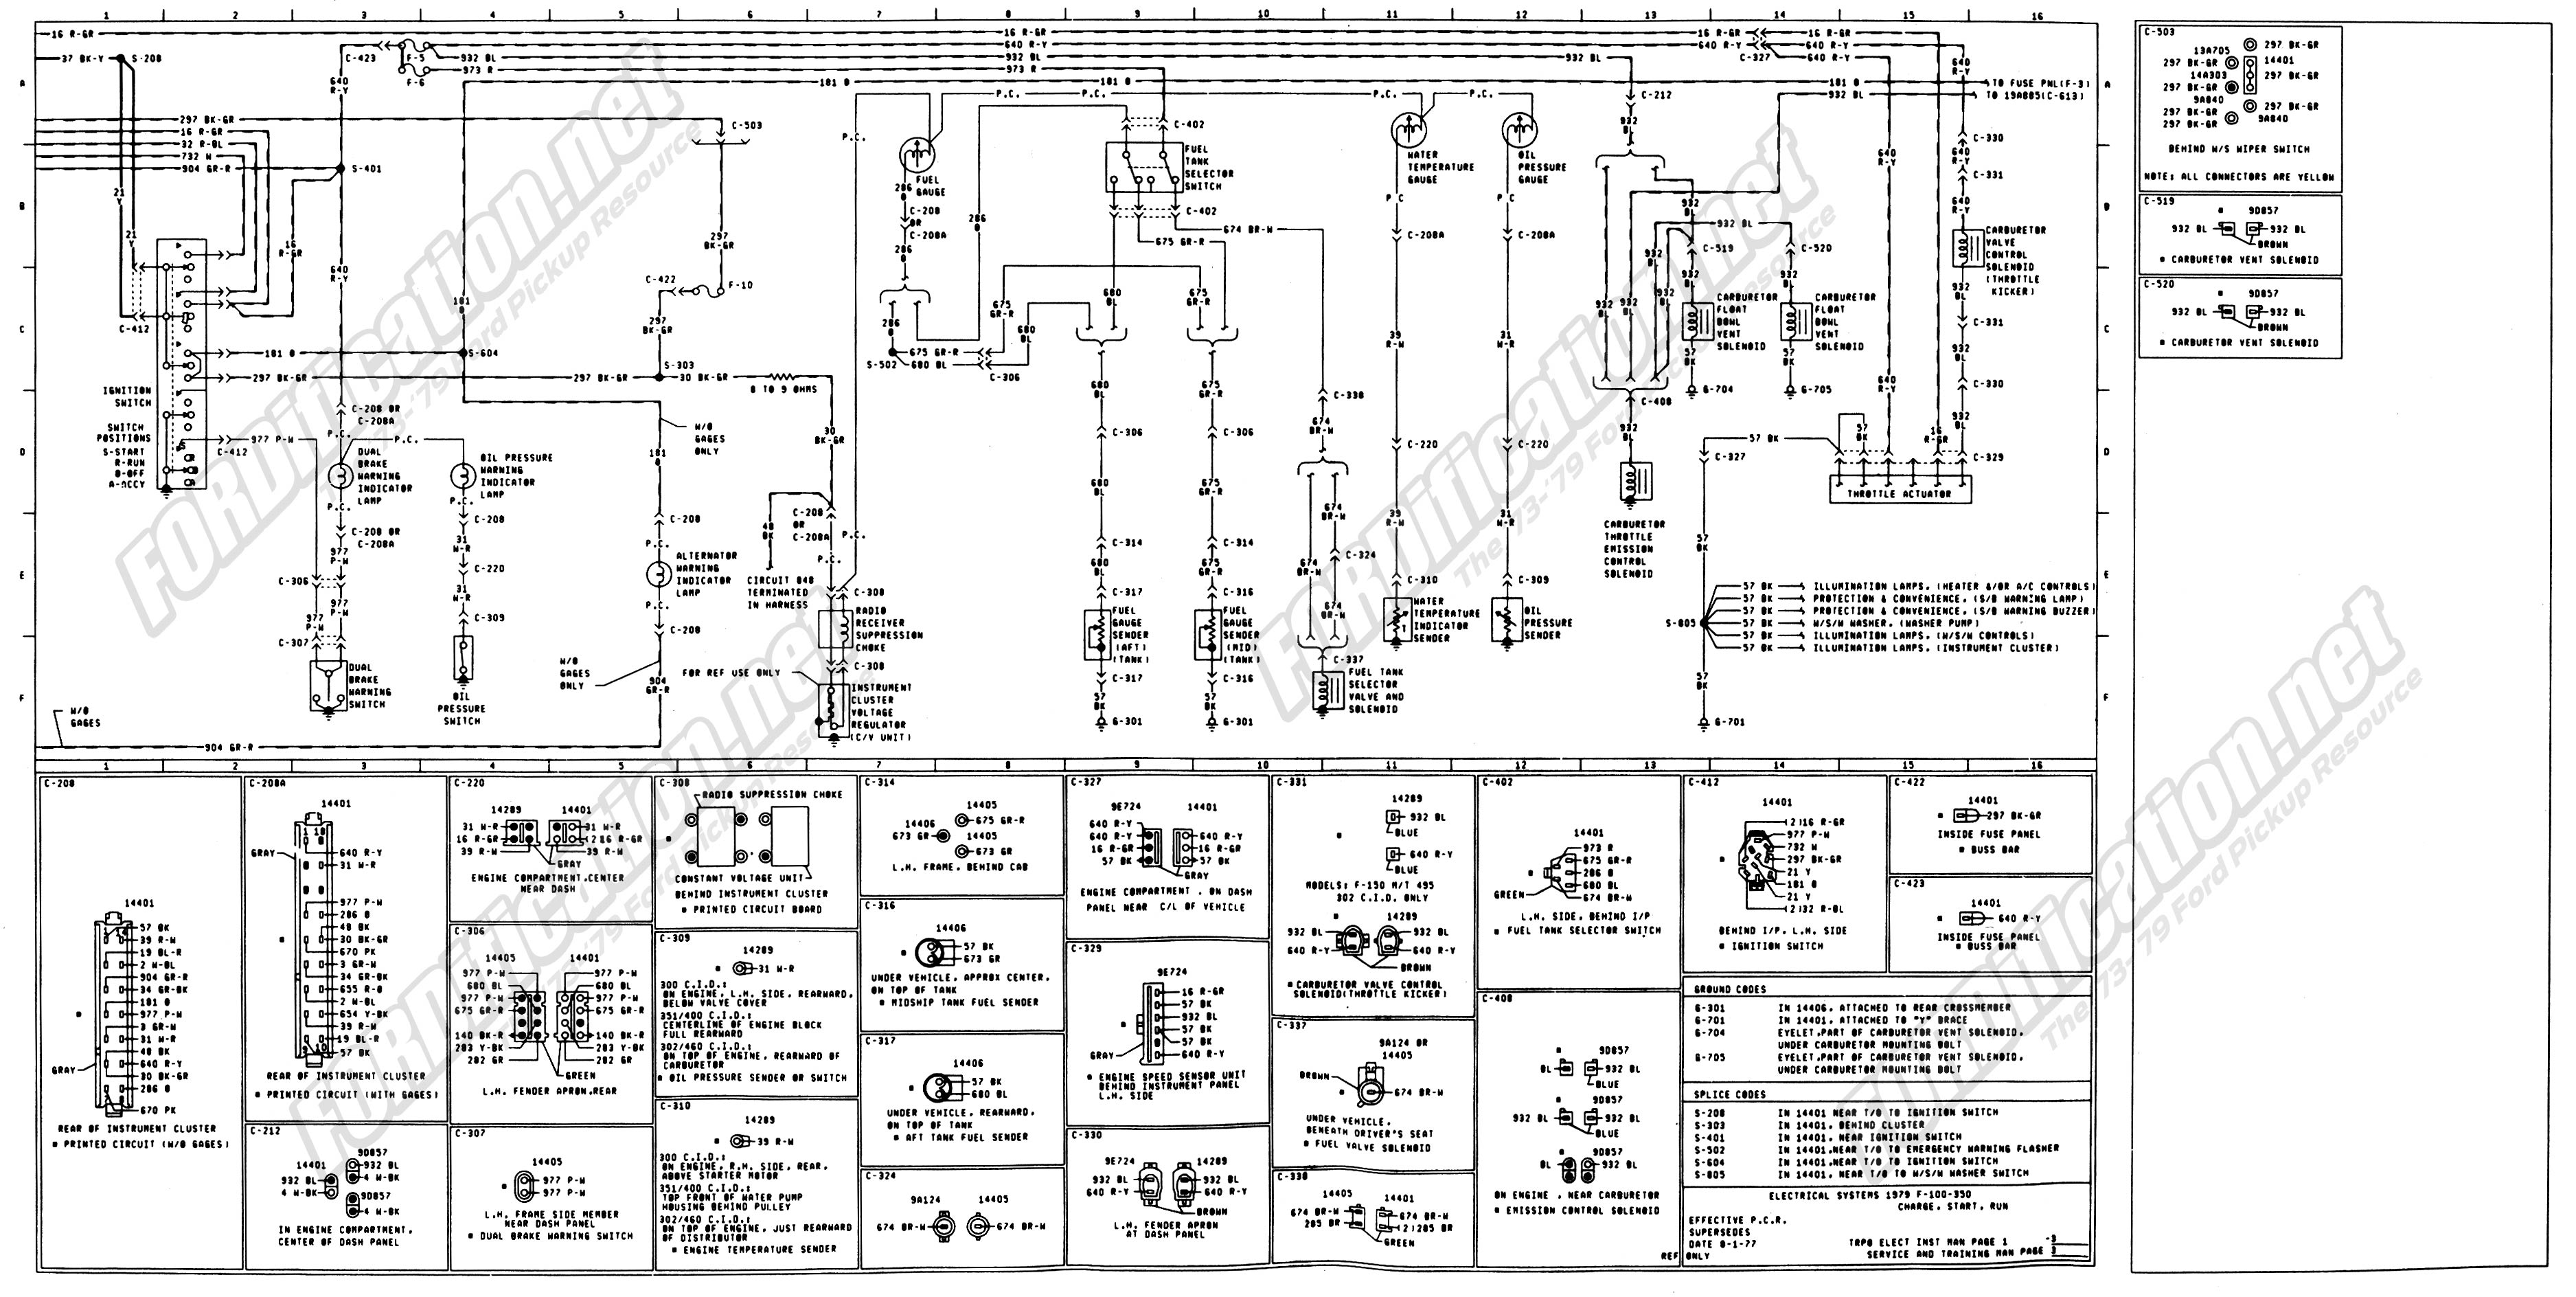 Ford Fuel Tank Selector Valve Wiring Diagram from www.fordification.net